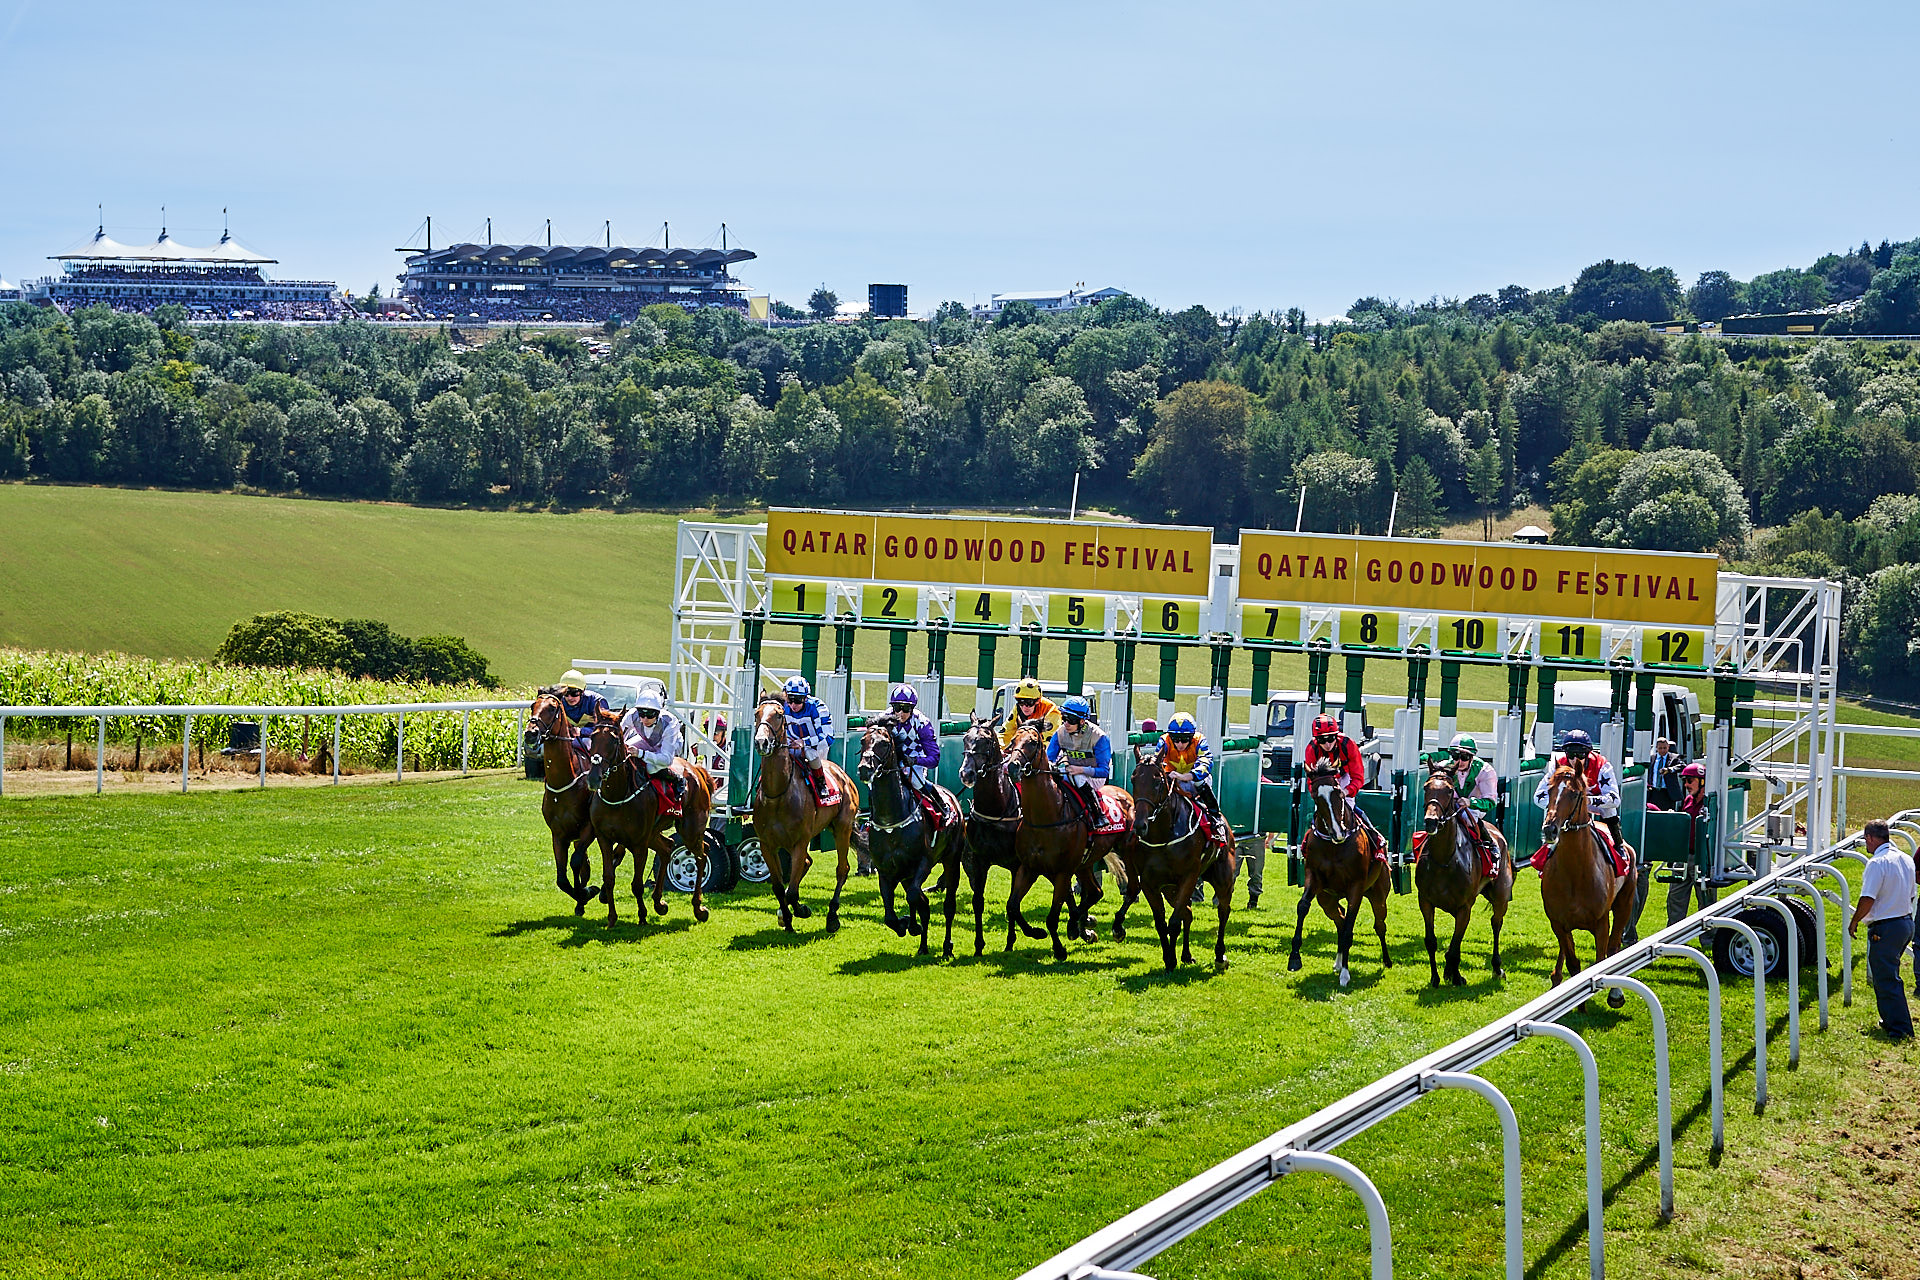 Start of the race at Qatar Goodwood Festival 2018